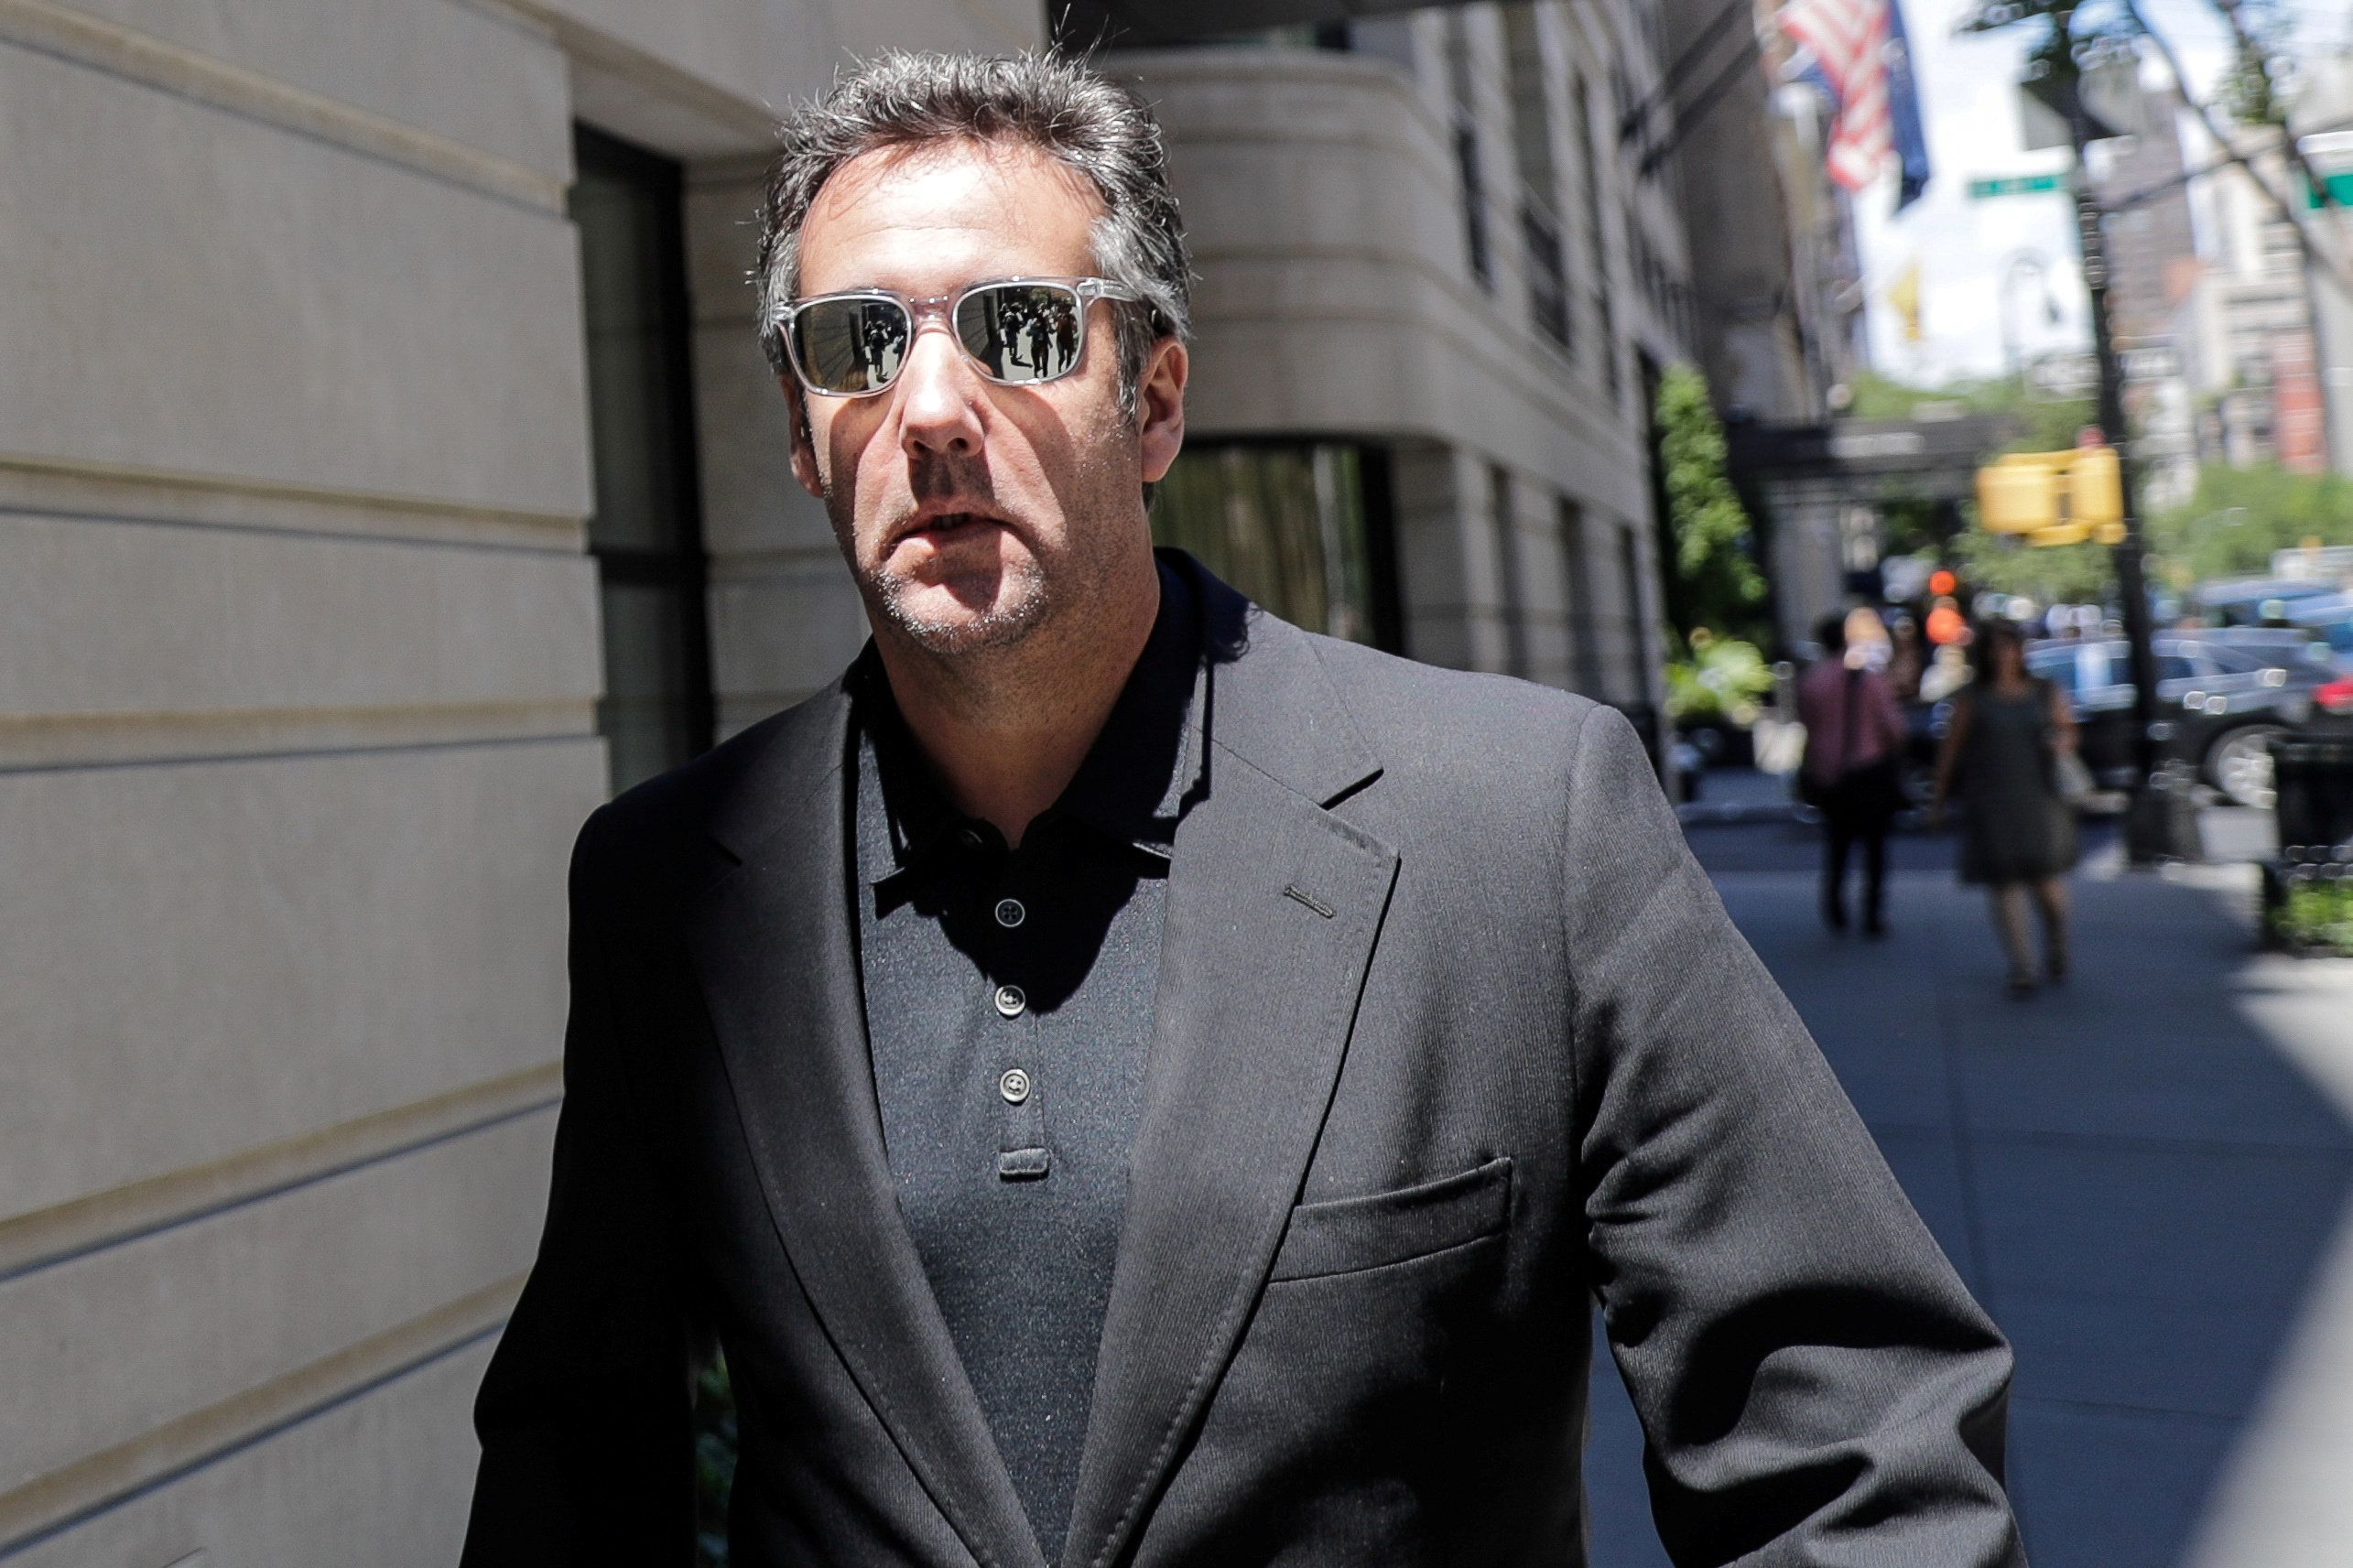 President Donald Trump's former personal attorney Michael Cohen is seen leaving a hotel in June. Cohen has been investigated